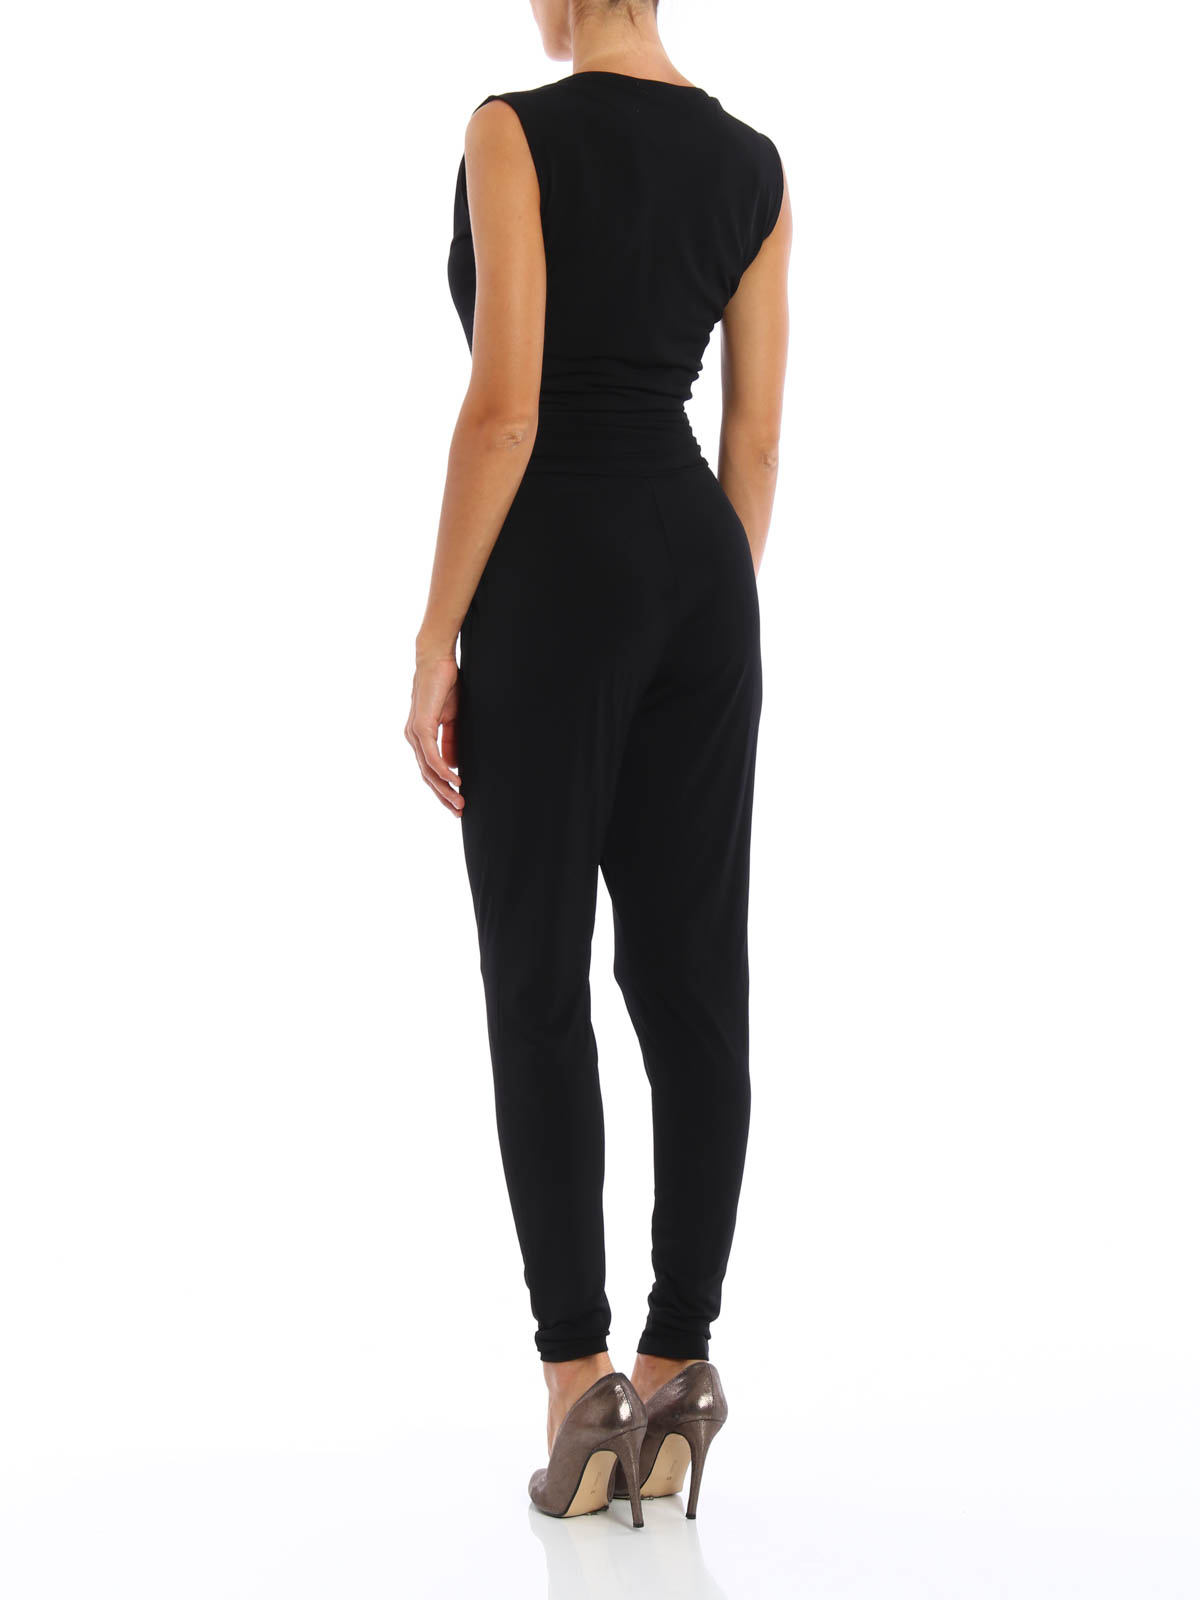 Michael Kors Sleeveless Jersey Jumpsuit Jumpsuits